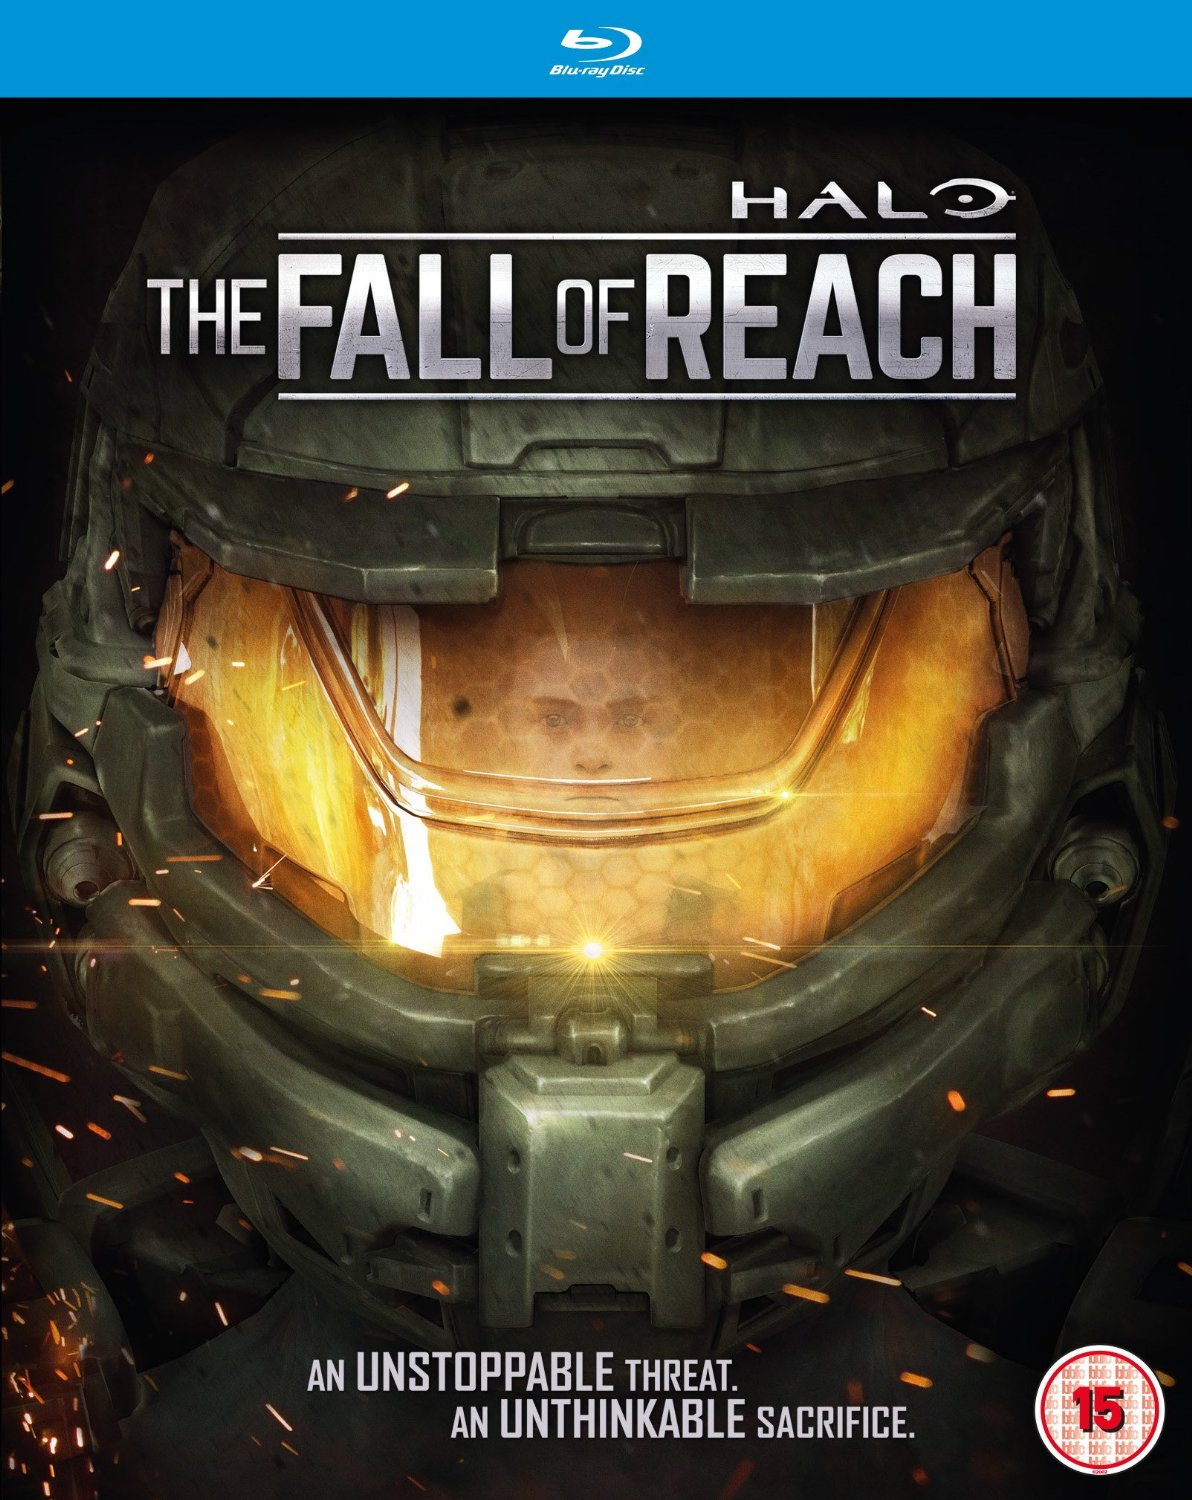 Halo The Fall Of Reach Blu-ray review